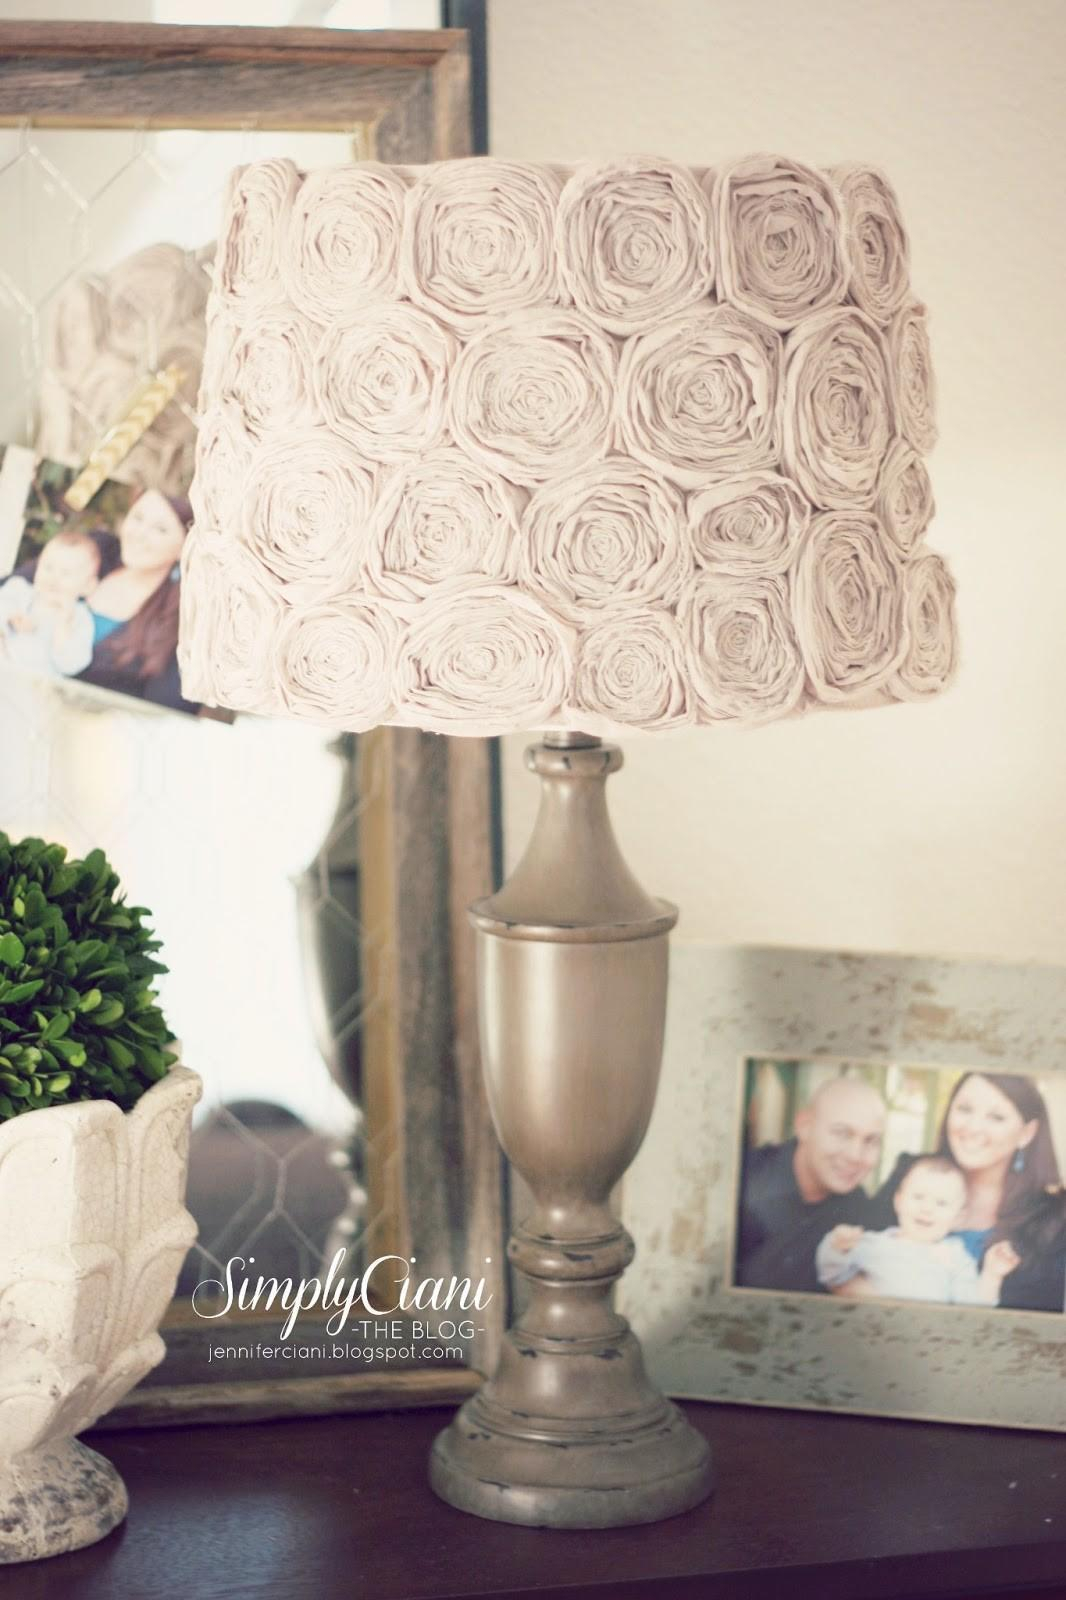 Shabby Chic Look With Handmade Rosettes Extra Appealing DIY Lampshades To Brighten Up Your Room Every Day